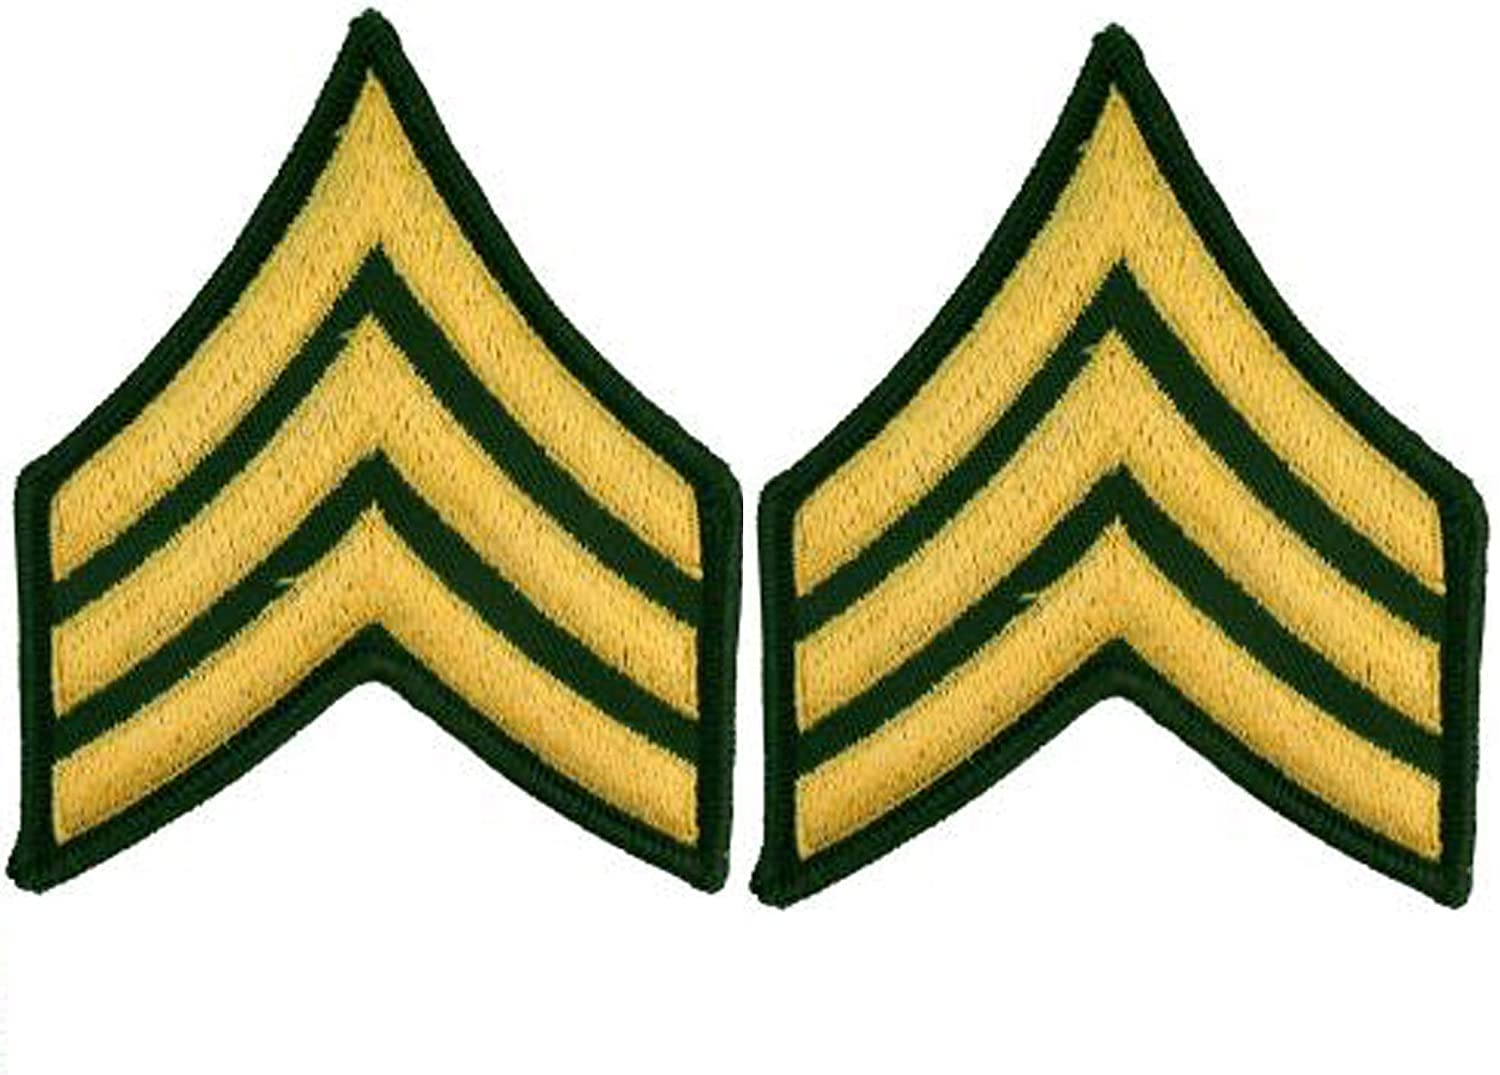 United States Army Rank E5 Sergeant SGT Patches, Dress Green, with Iron-On Adhesive (Set of Two)